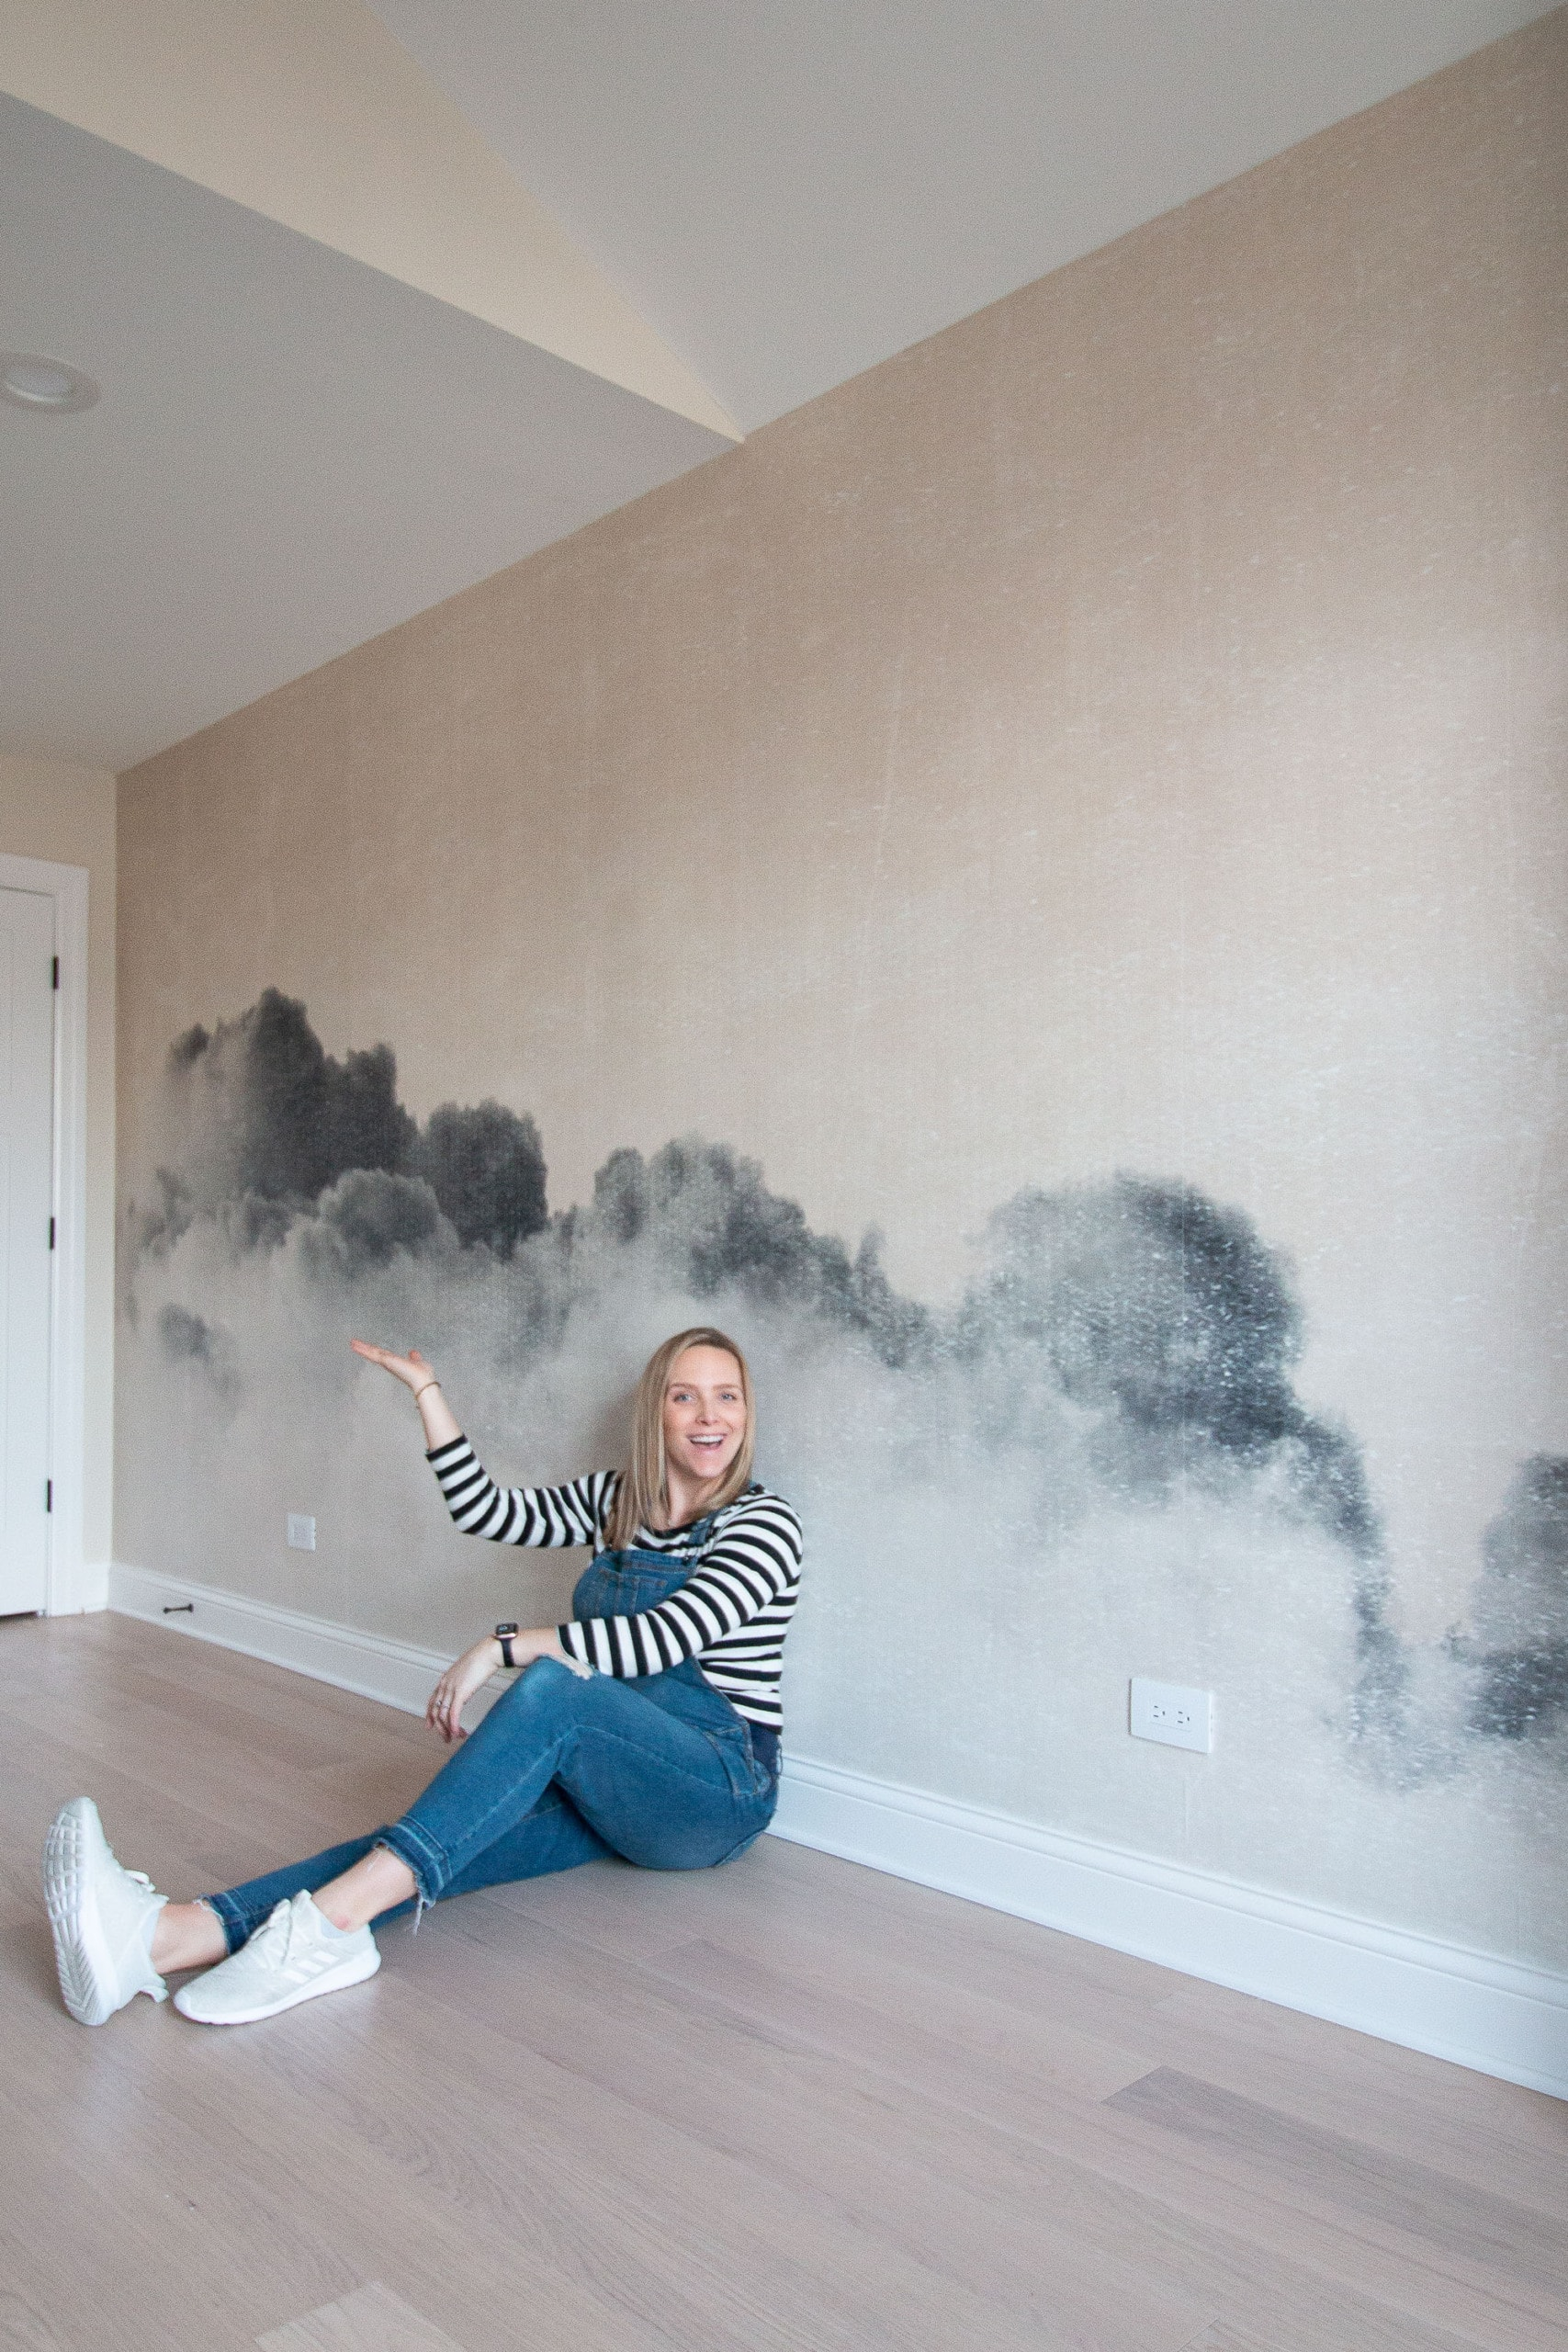 How to install a wall mural in your home